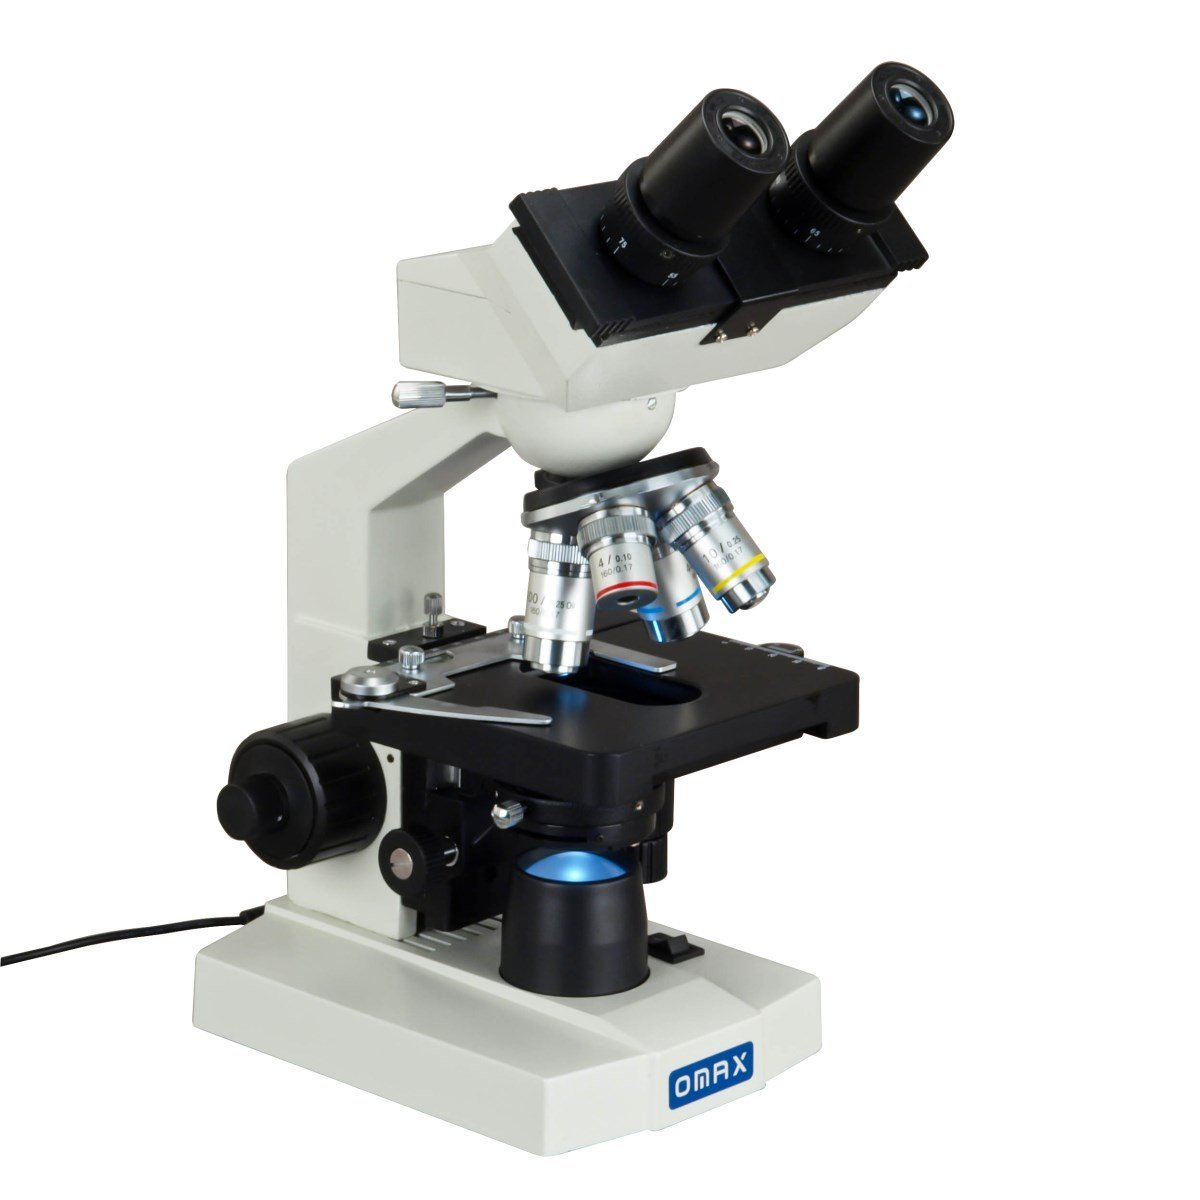 OMAX 40X-2500X Lab Binocular Biological Compound LED Microscope with 3D Mechanical Stage and Coaxial Coarse/Fine Focusing Knob by OMAX